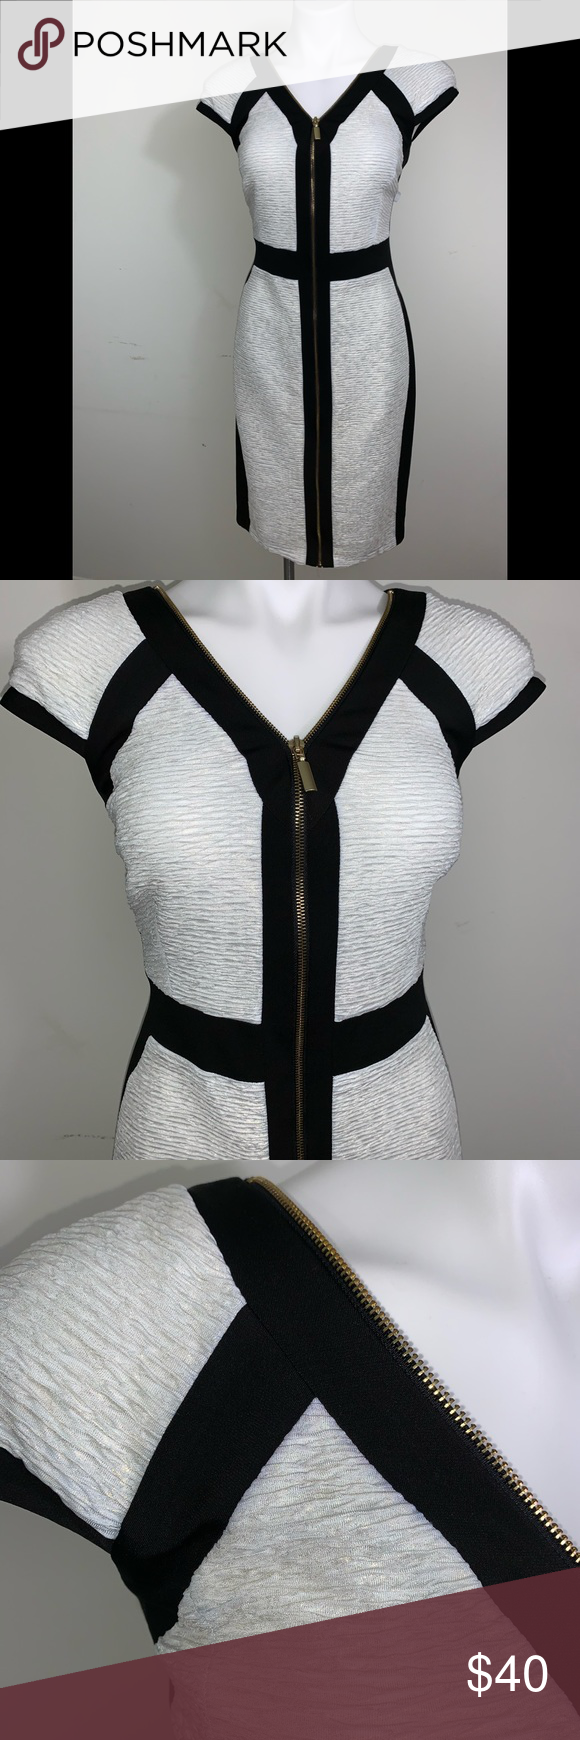 Two Tone Black And Cream Dress Cream And Black Dress With Zip Front With A Gold Shimmer Through Out Dress Stretchy Kni Cream Dress Dresses Dress Barn Dresses [ 1740 x 580 Pixel ]